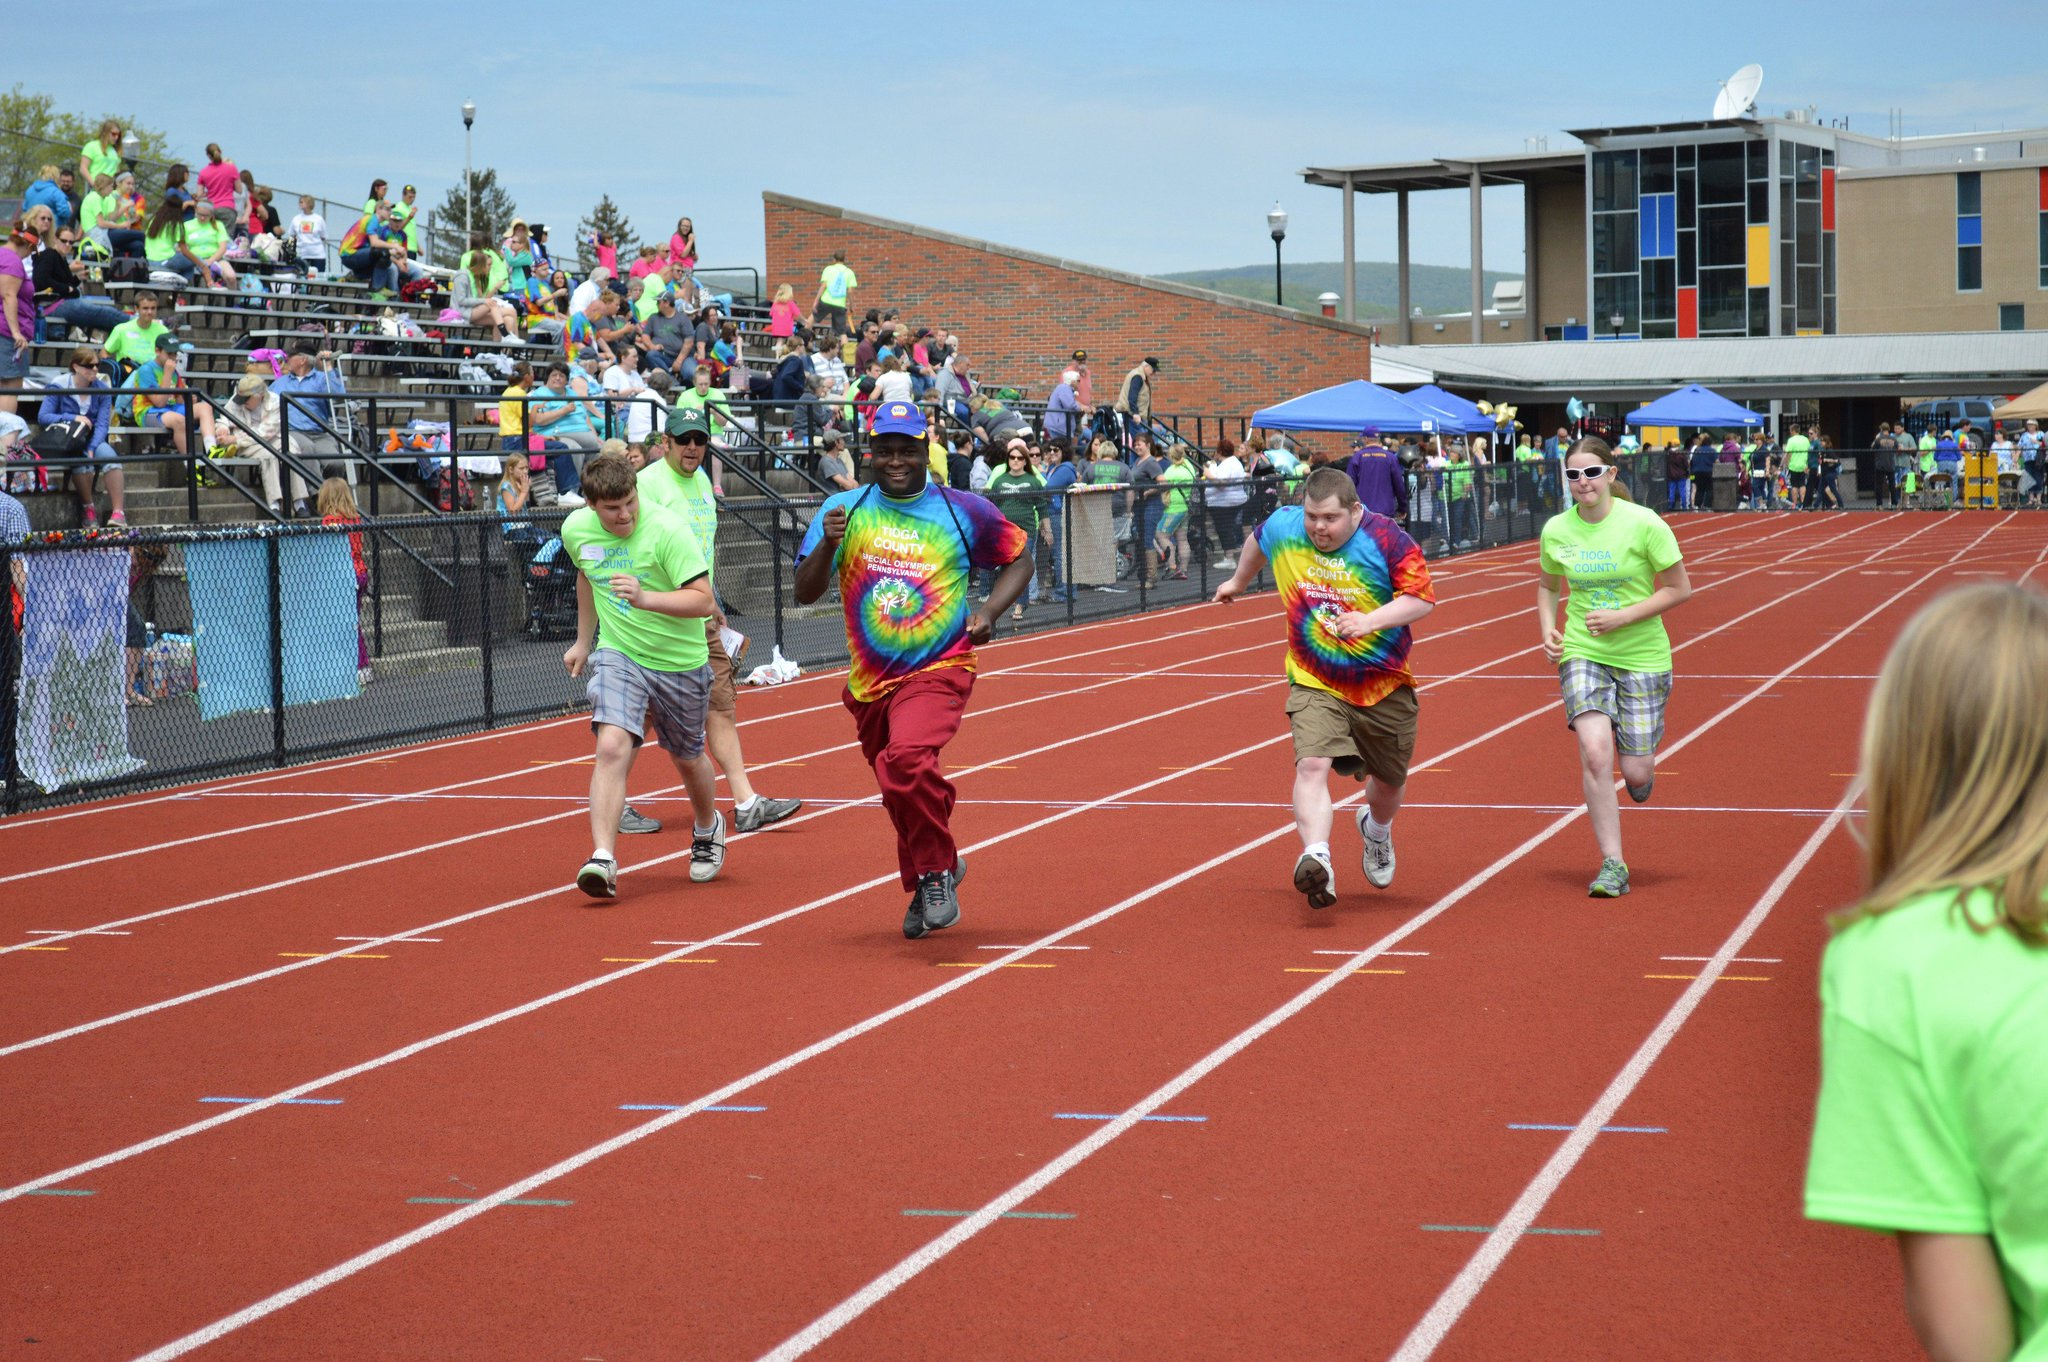 Mansfield University's Van Norman Field hosts the Tioga County Special Olympics each year #InvestInMU #InvestInOURUniversities #fundPAfuture https://t.co/z8EkCjExuK